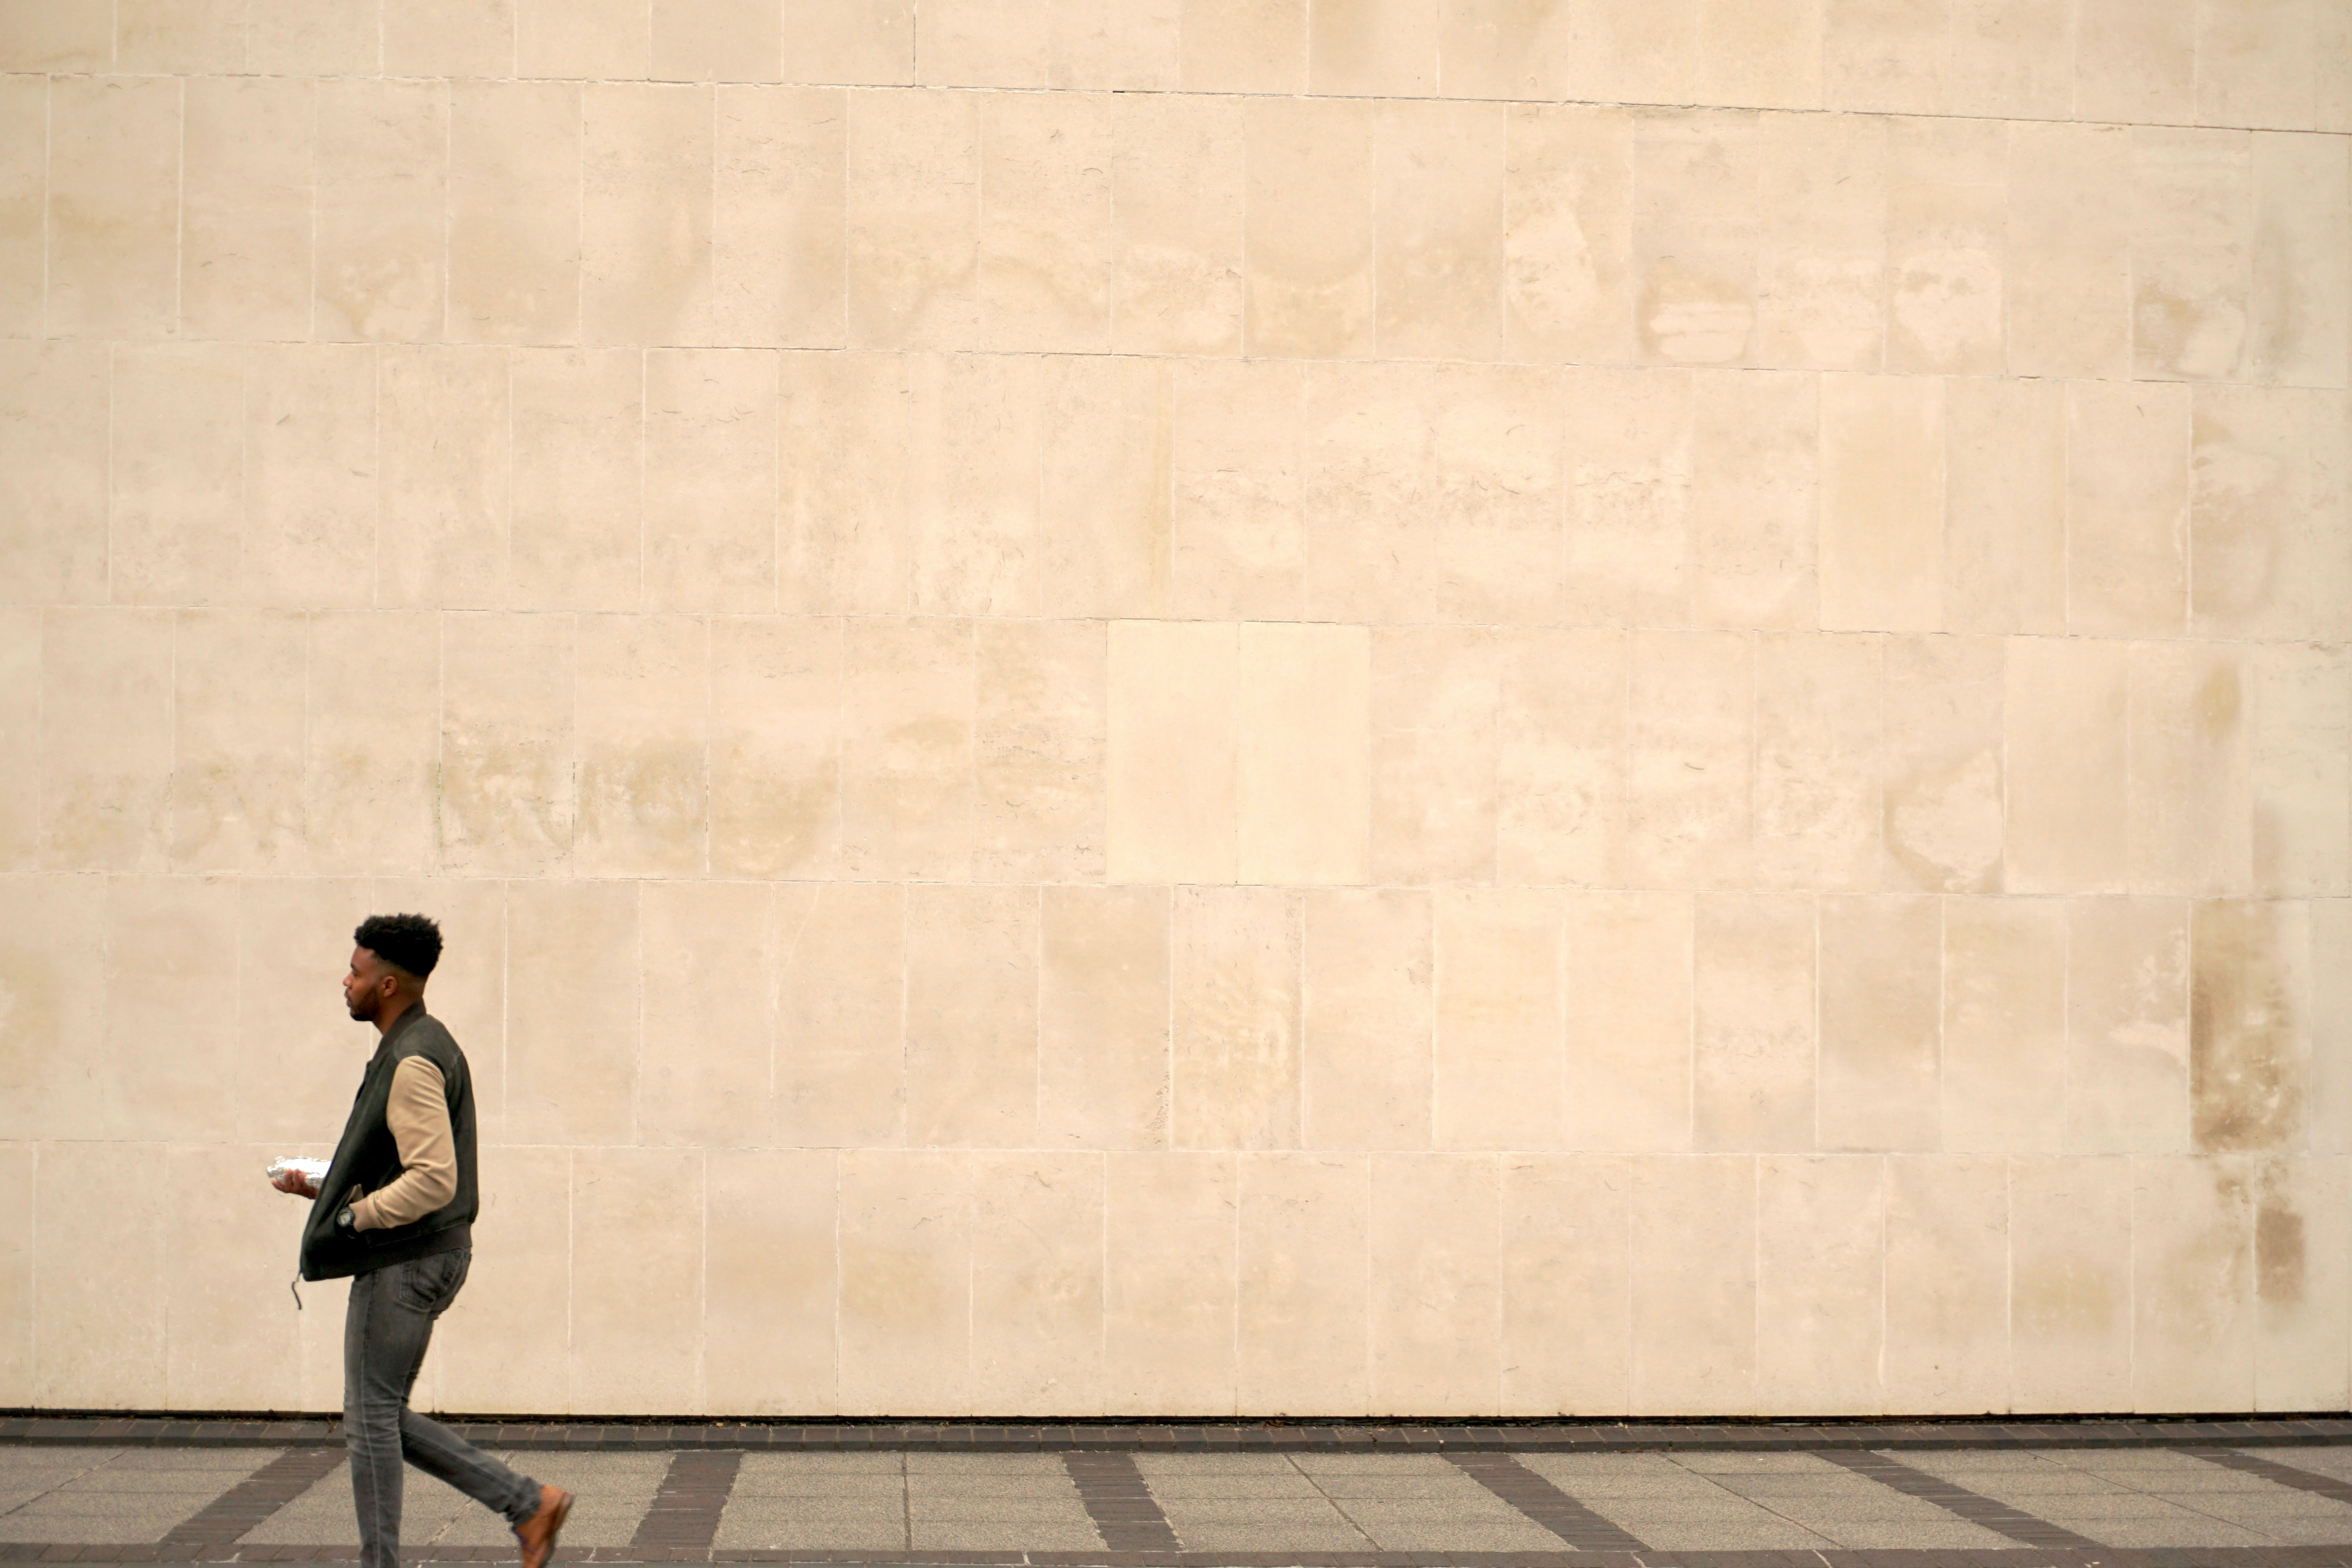 man walking on grey concrete pavement